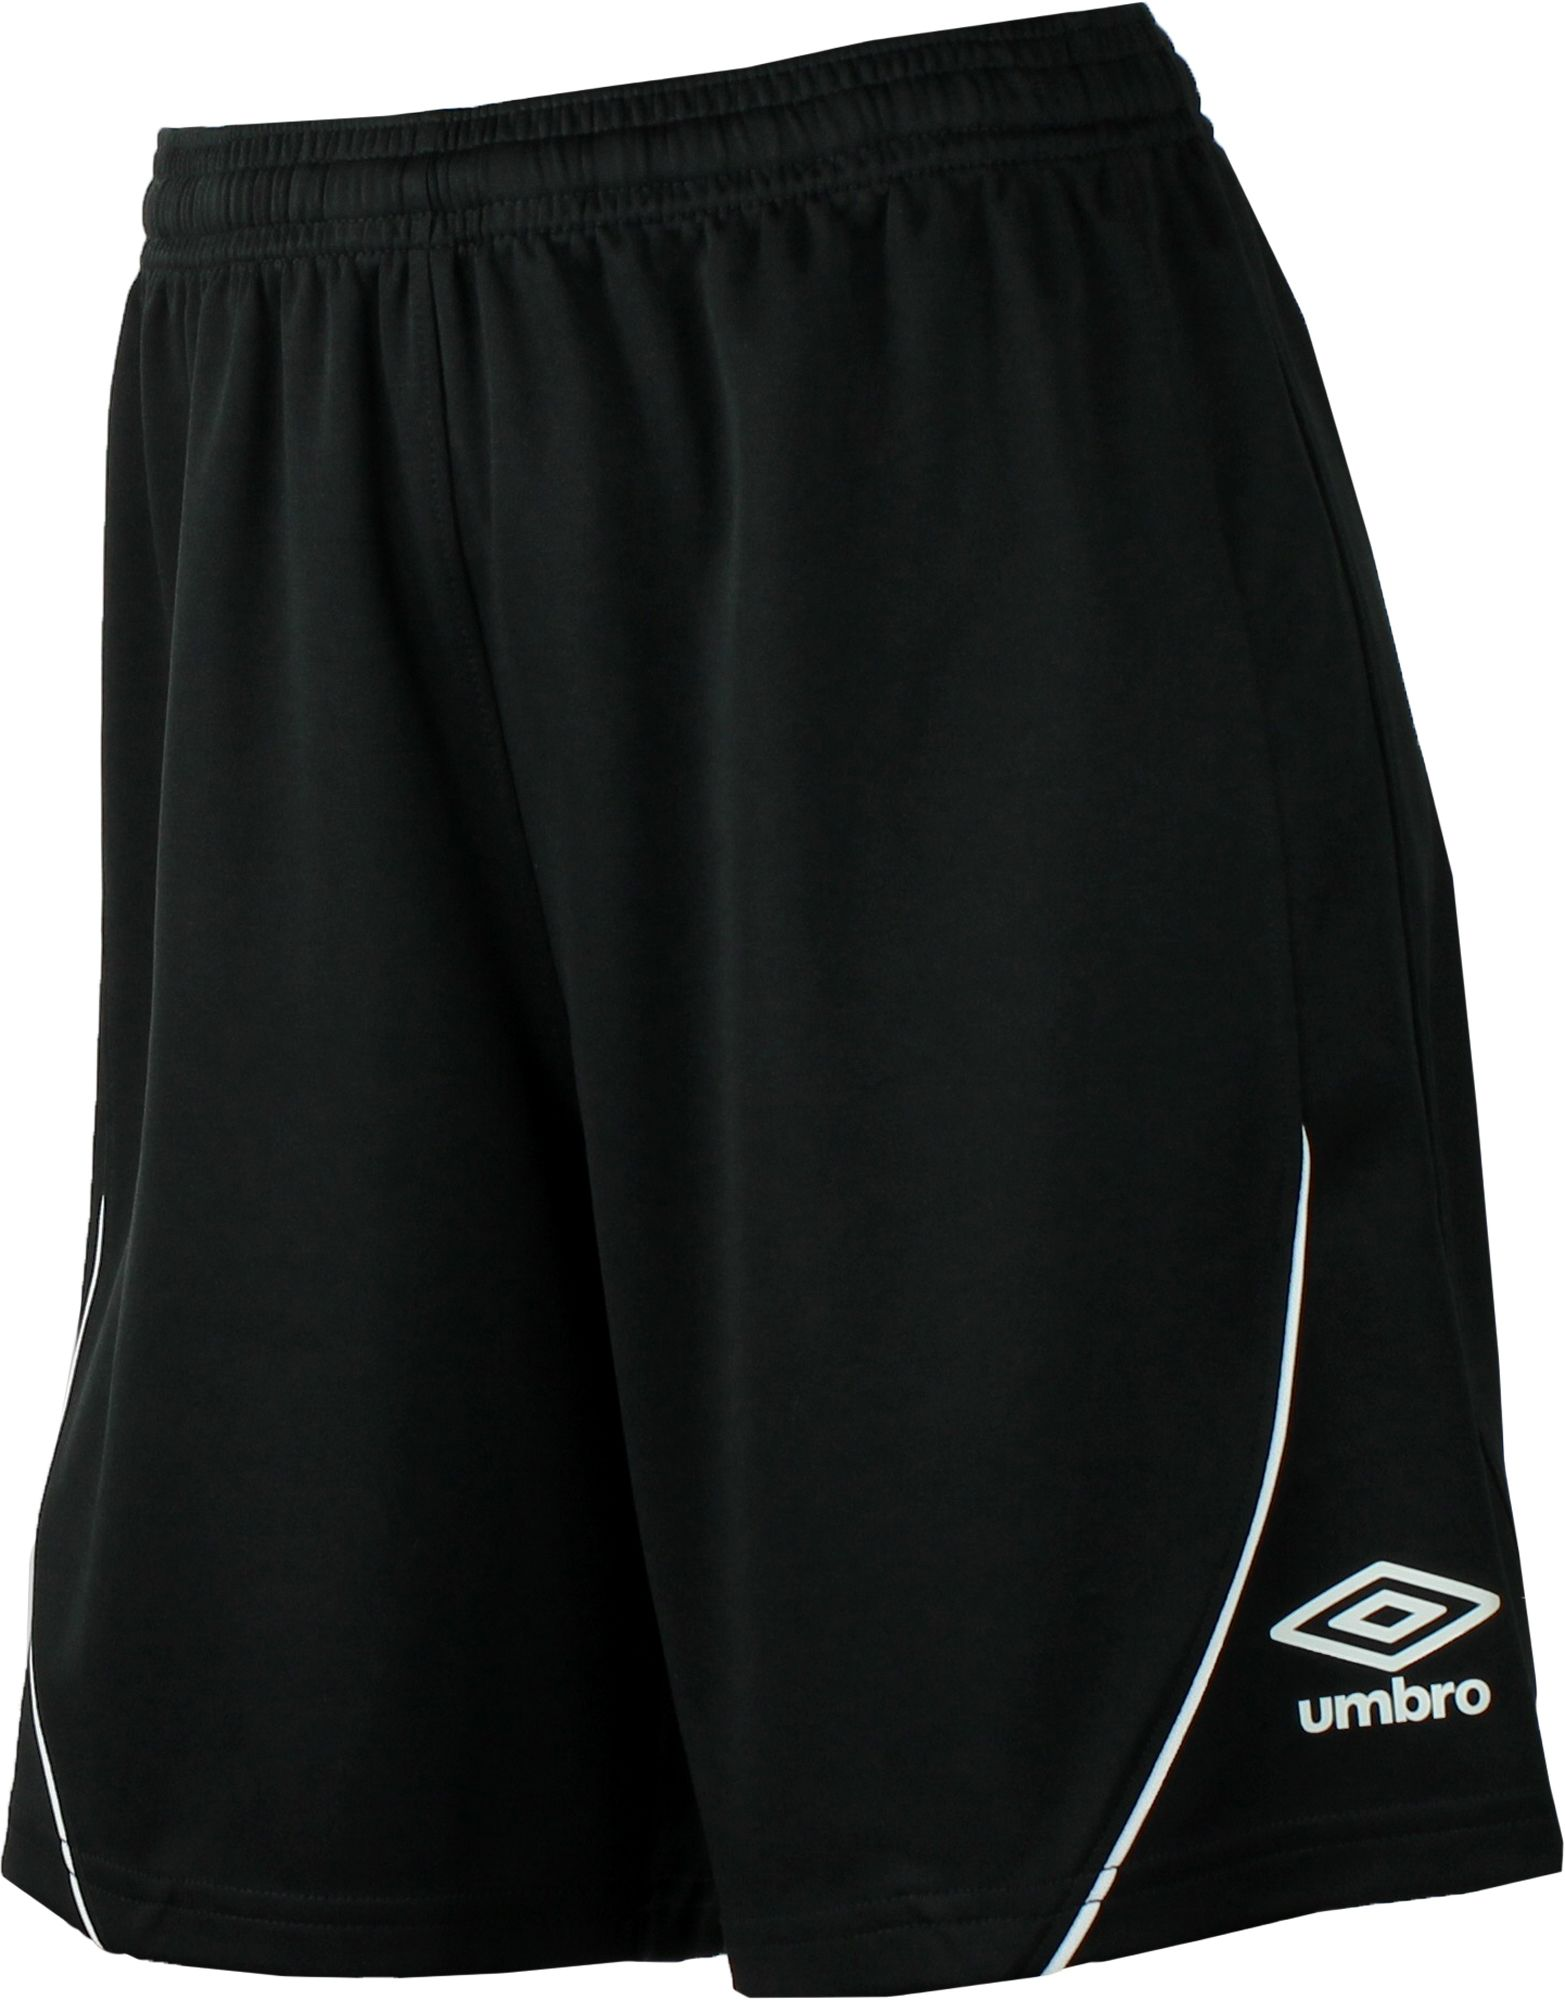 umbro youth knit soccer shorts EGDXKDF